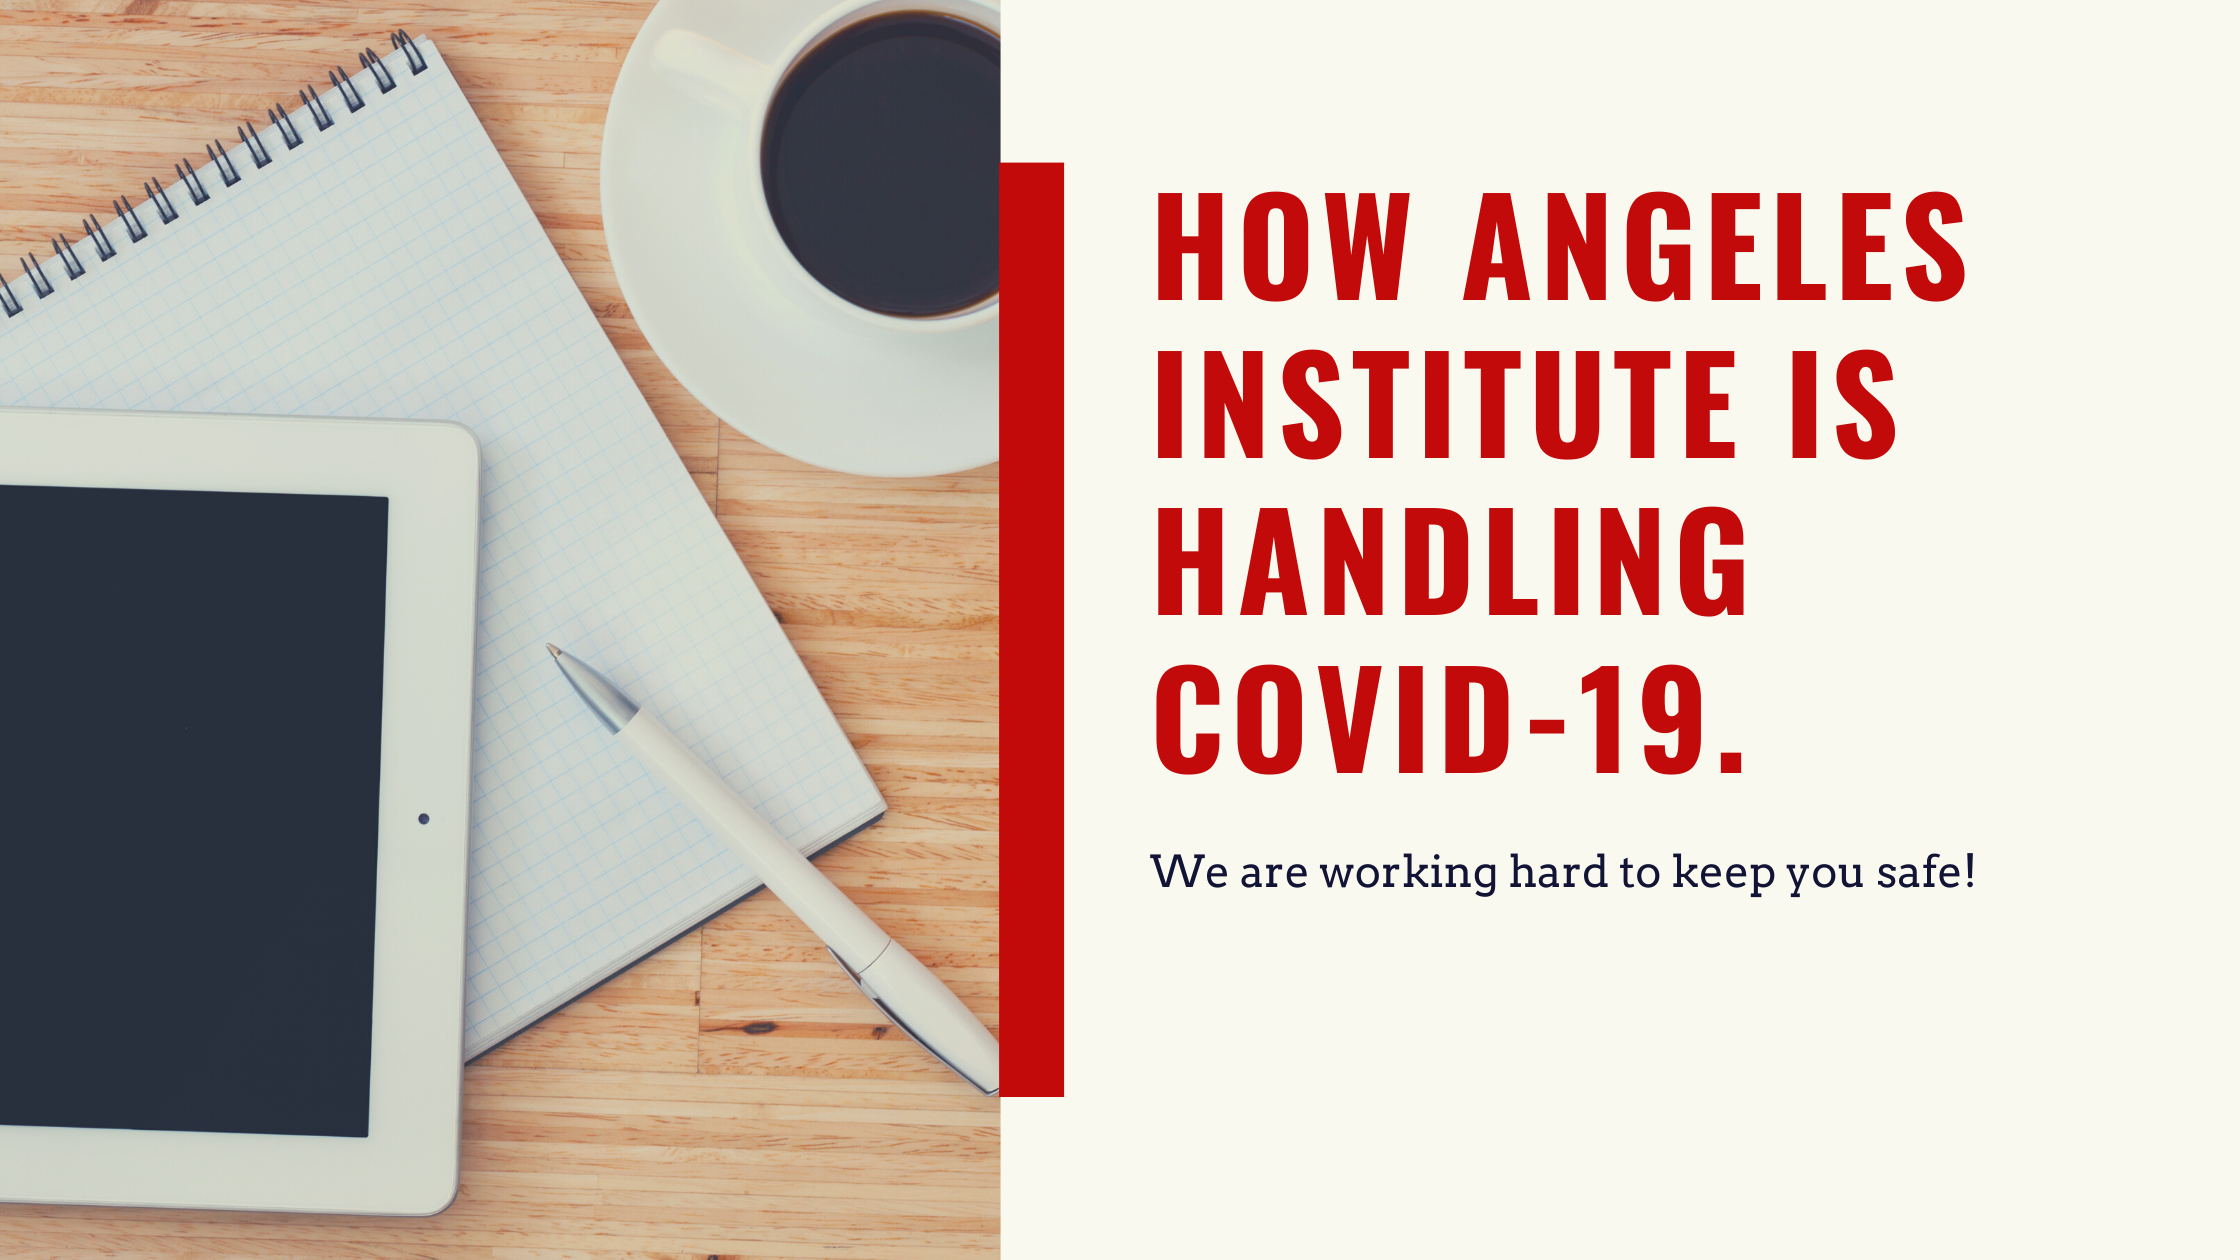 How Angeles Institute is handling COVID-19.